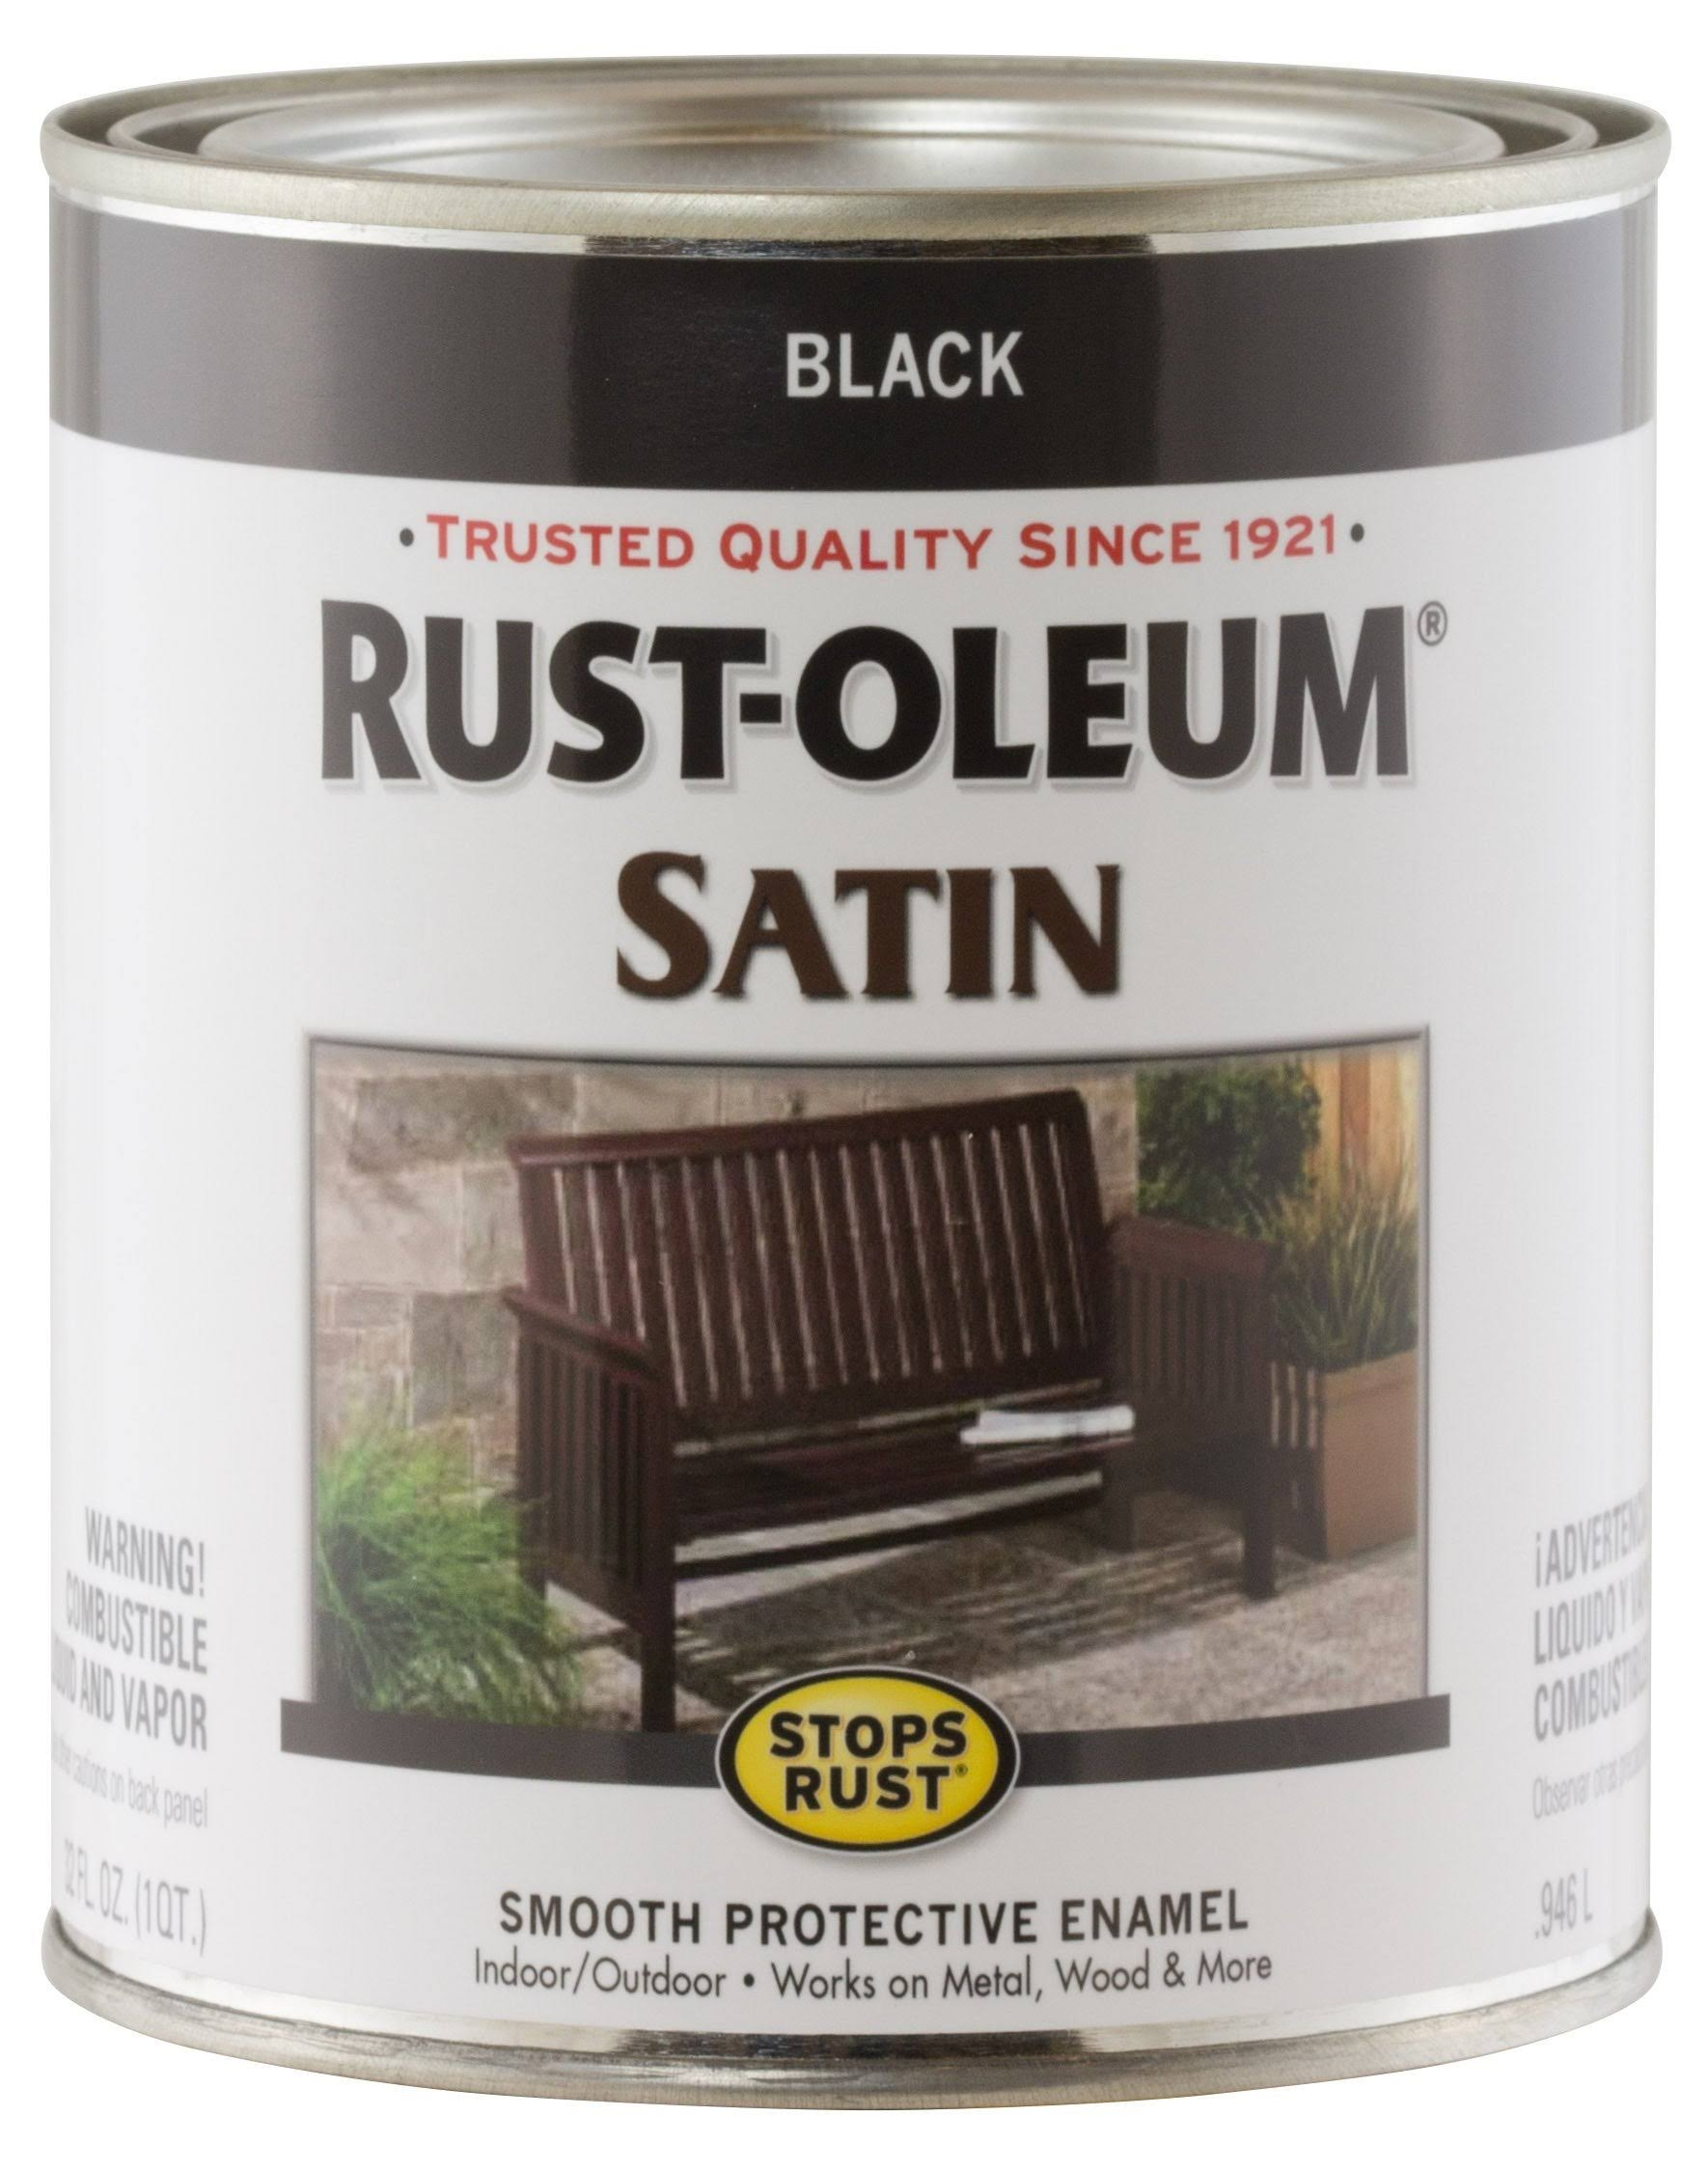 Rust-Oleum Satin Paint - Black, 1 Quart